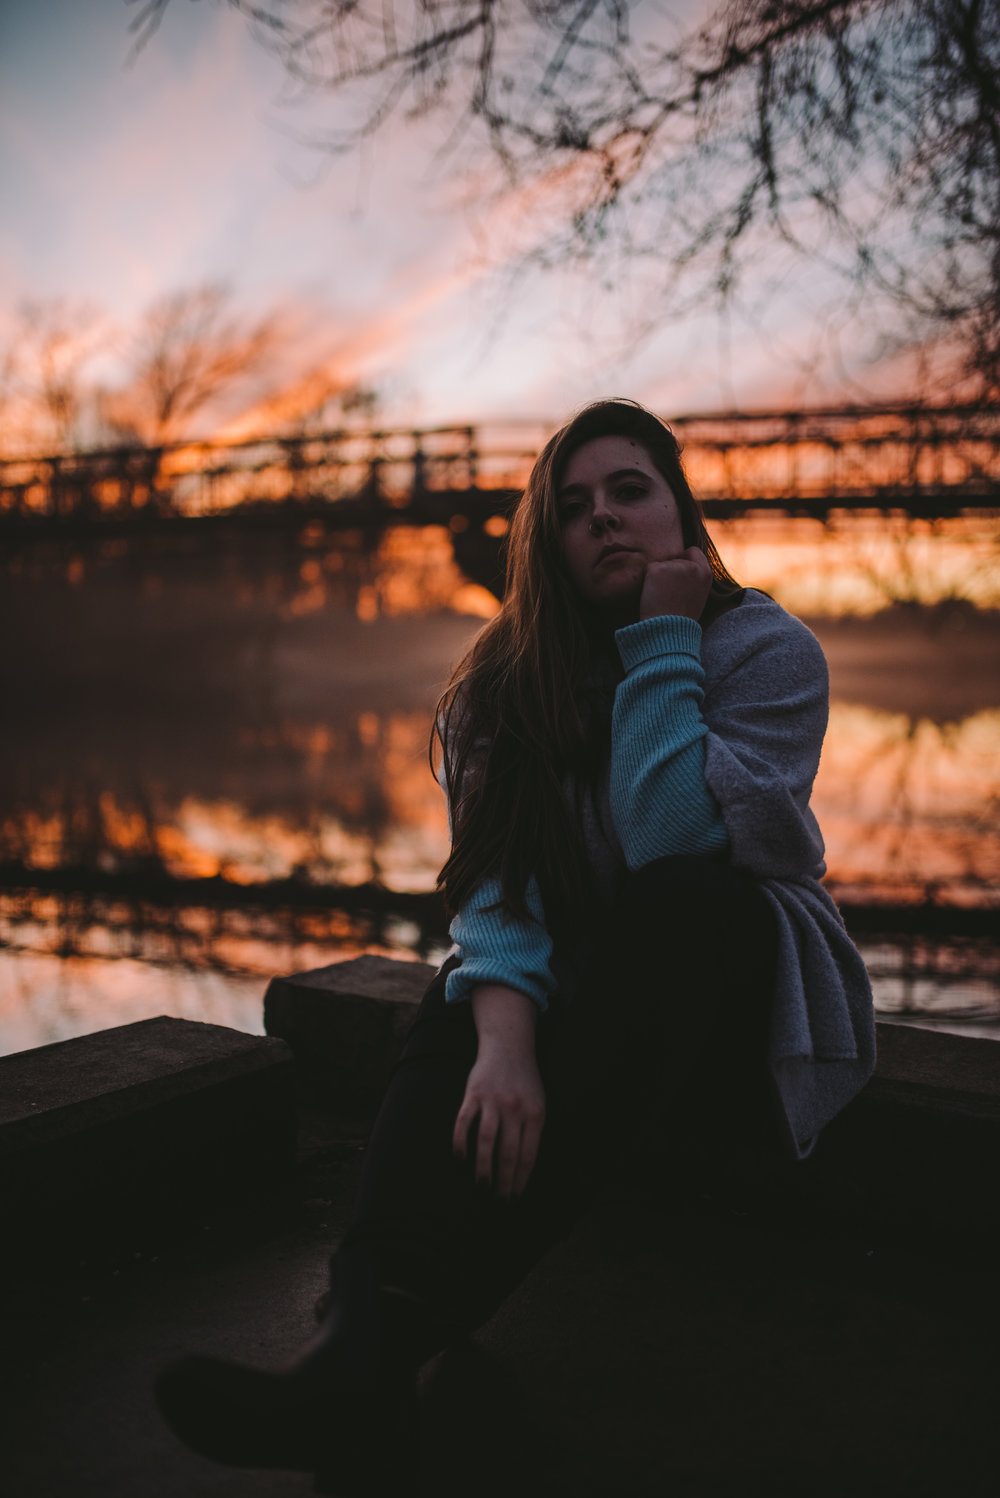 Sunset_IndianapolisIndiana_January2018_Senior Photography In Tempe_ArizonaSeniorPhotographer_SamanthaRosePhotography_final_-8.jpg